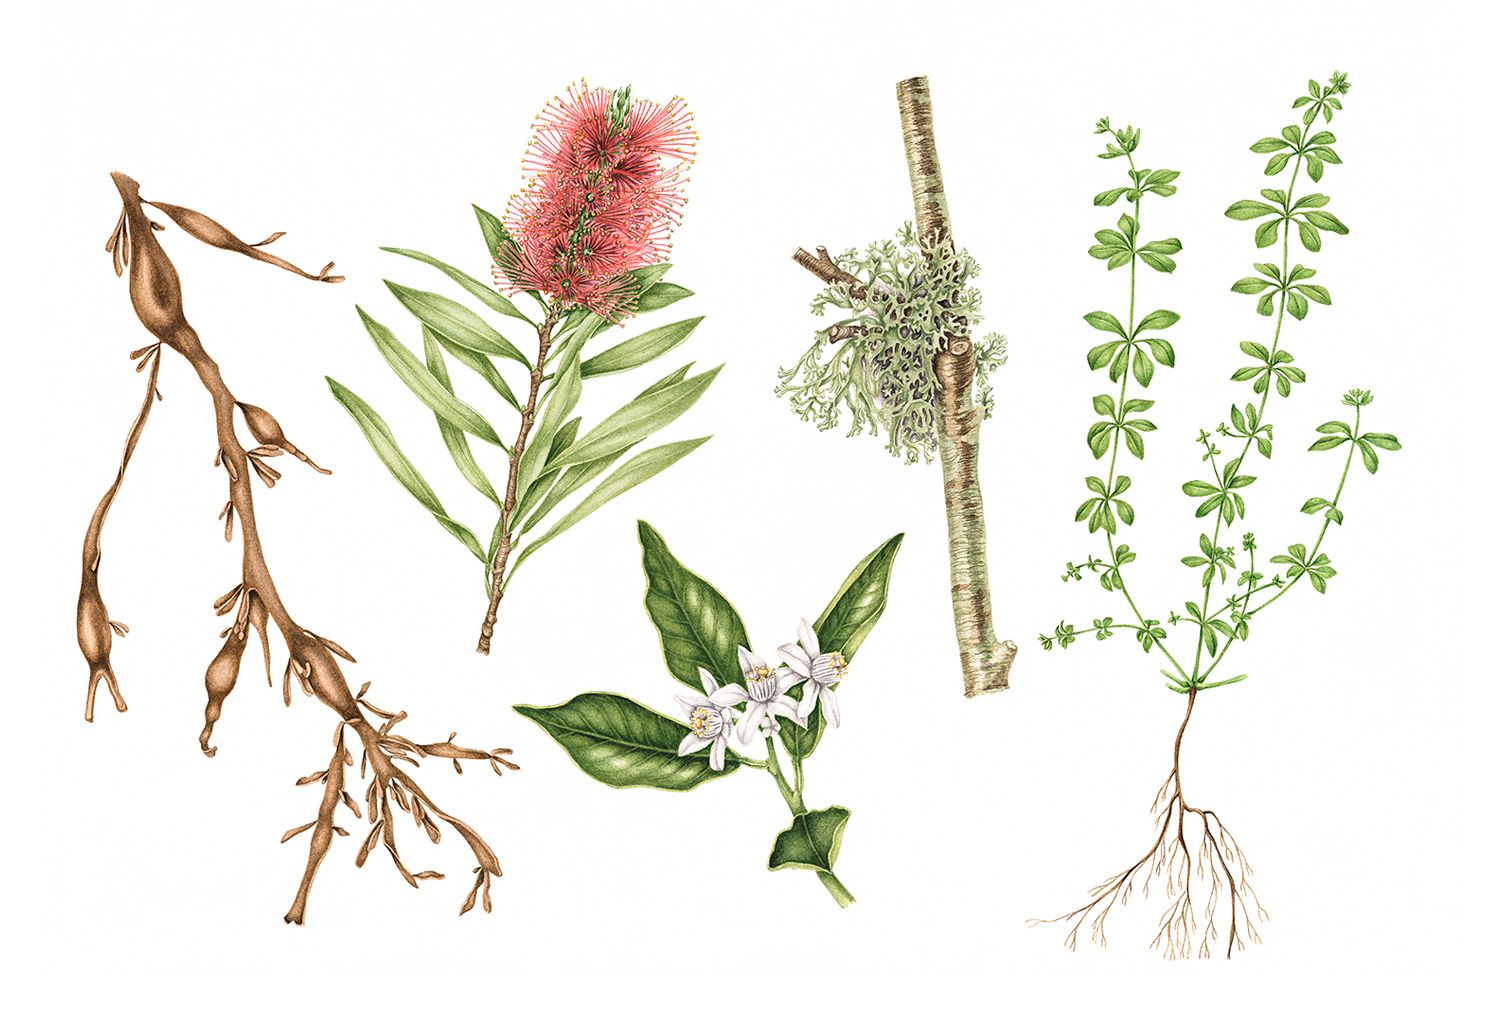 With Associates Field Guide, 2011, watercolour on paper (commission for digital agency With Associates with a plant portrait representing each member of the team)